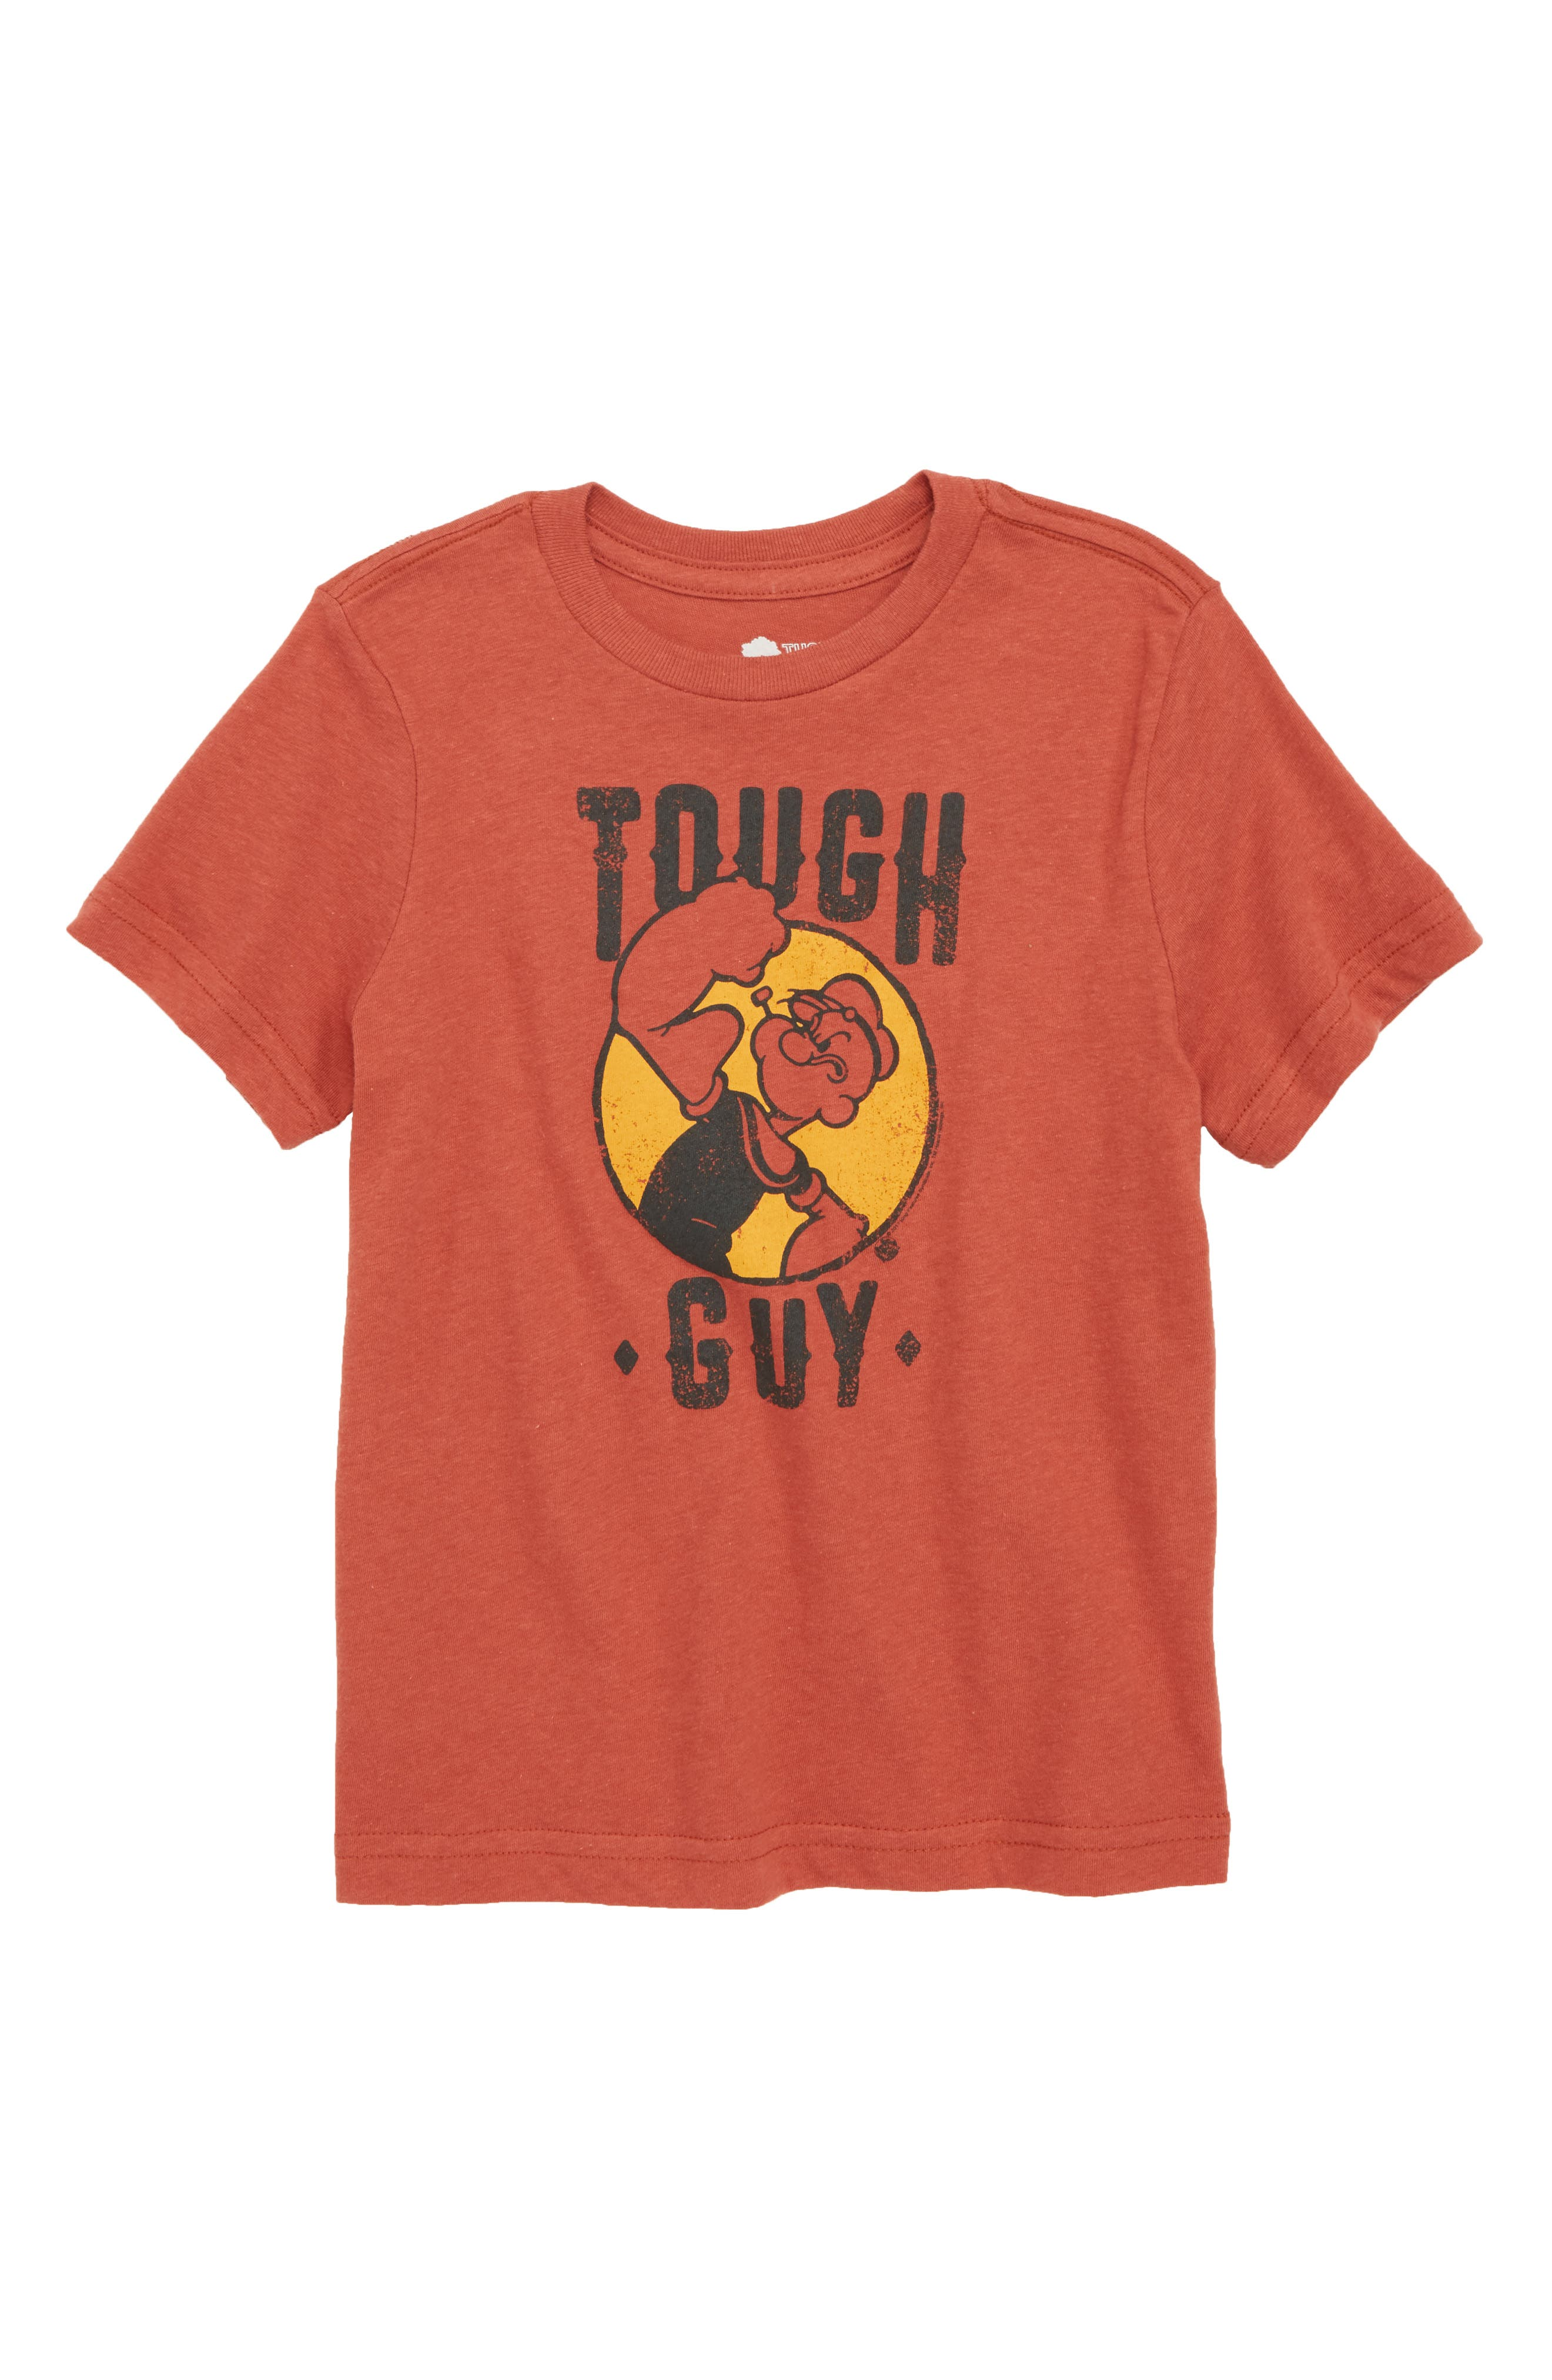 Graphic T-Shirt,                         Main,                         color, Red Ochre Heather Tough Guy